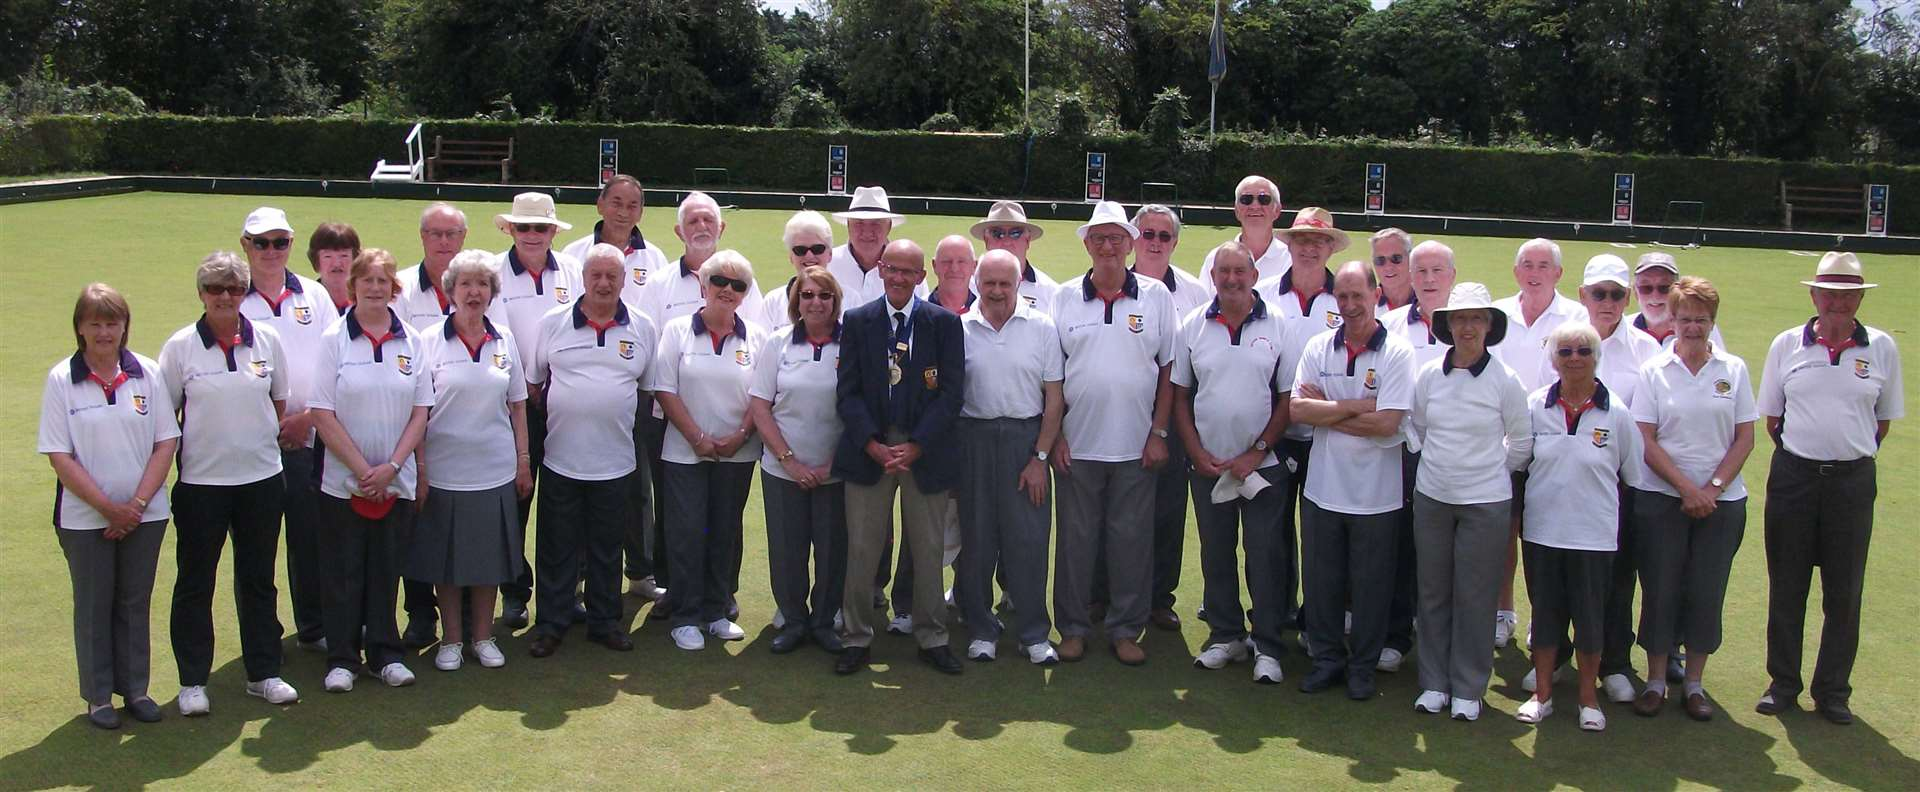 Bowlers at Ketton's President's Day (13633946)